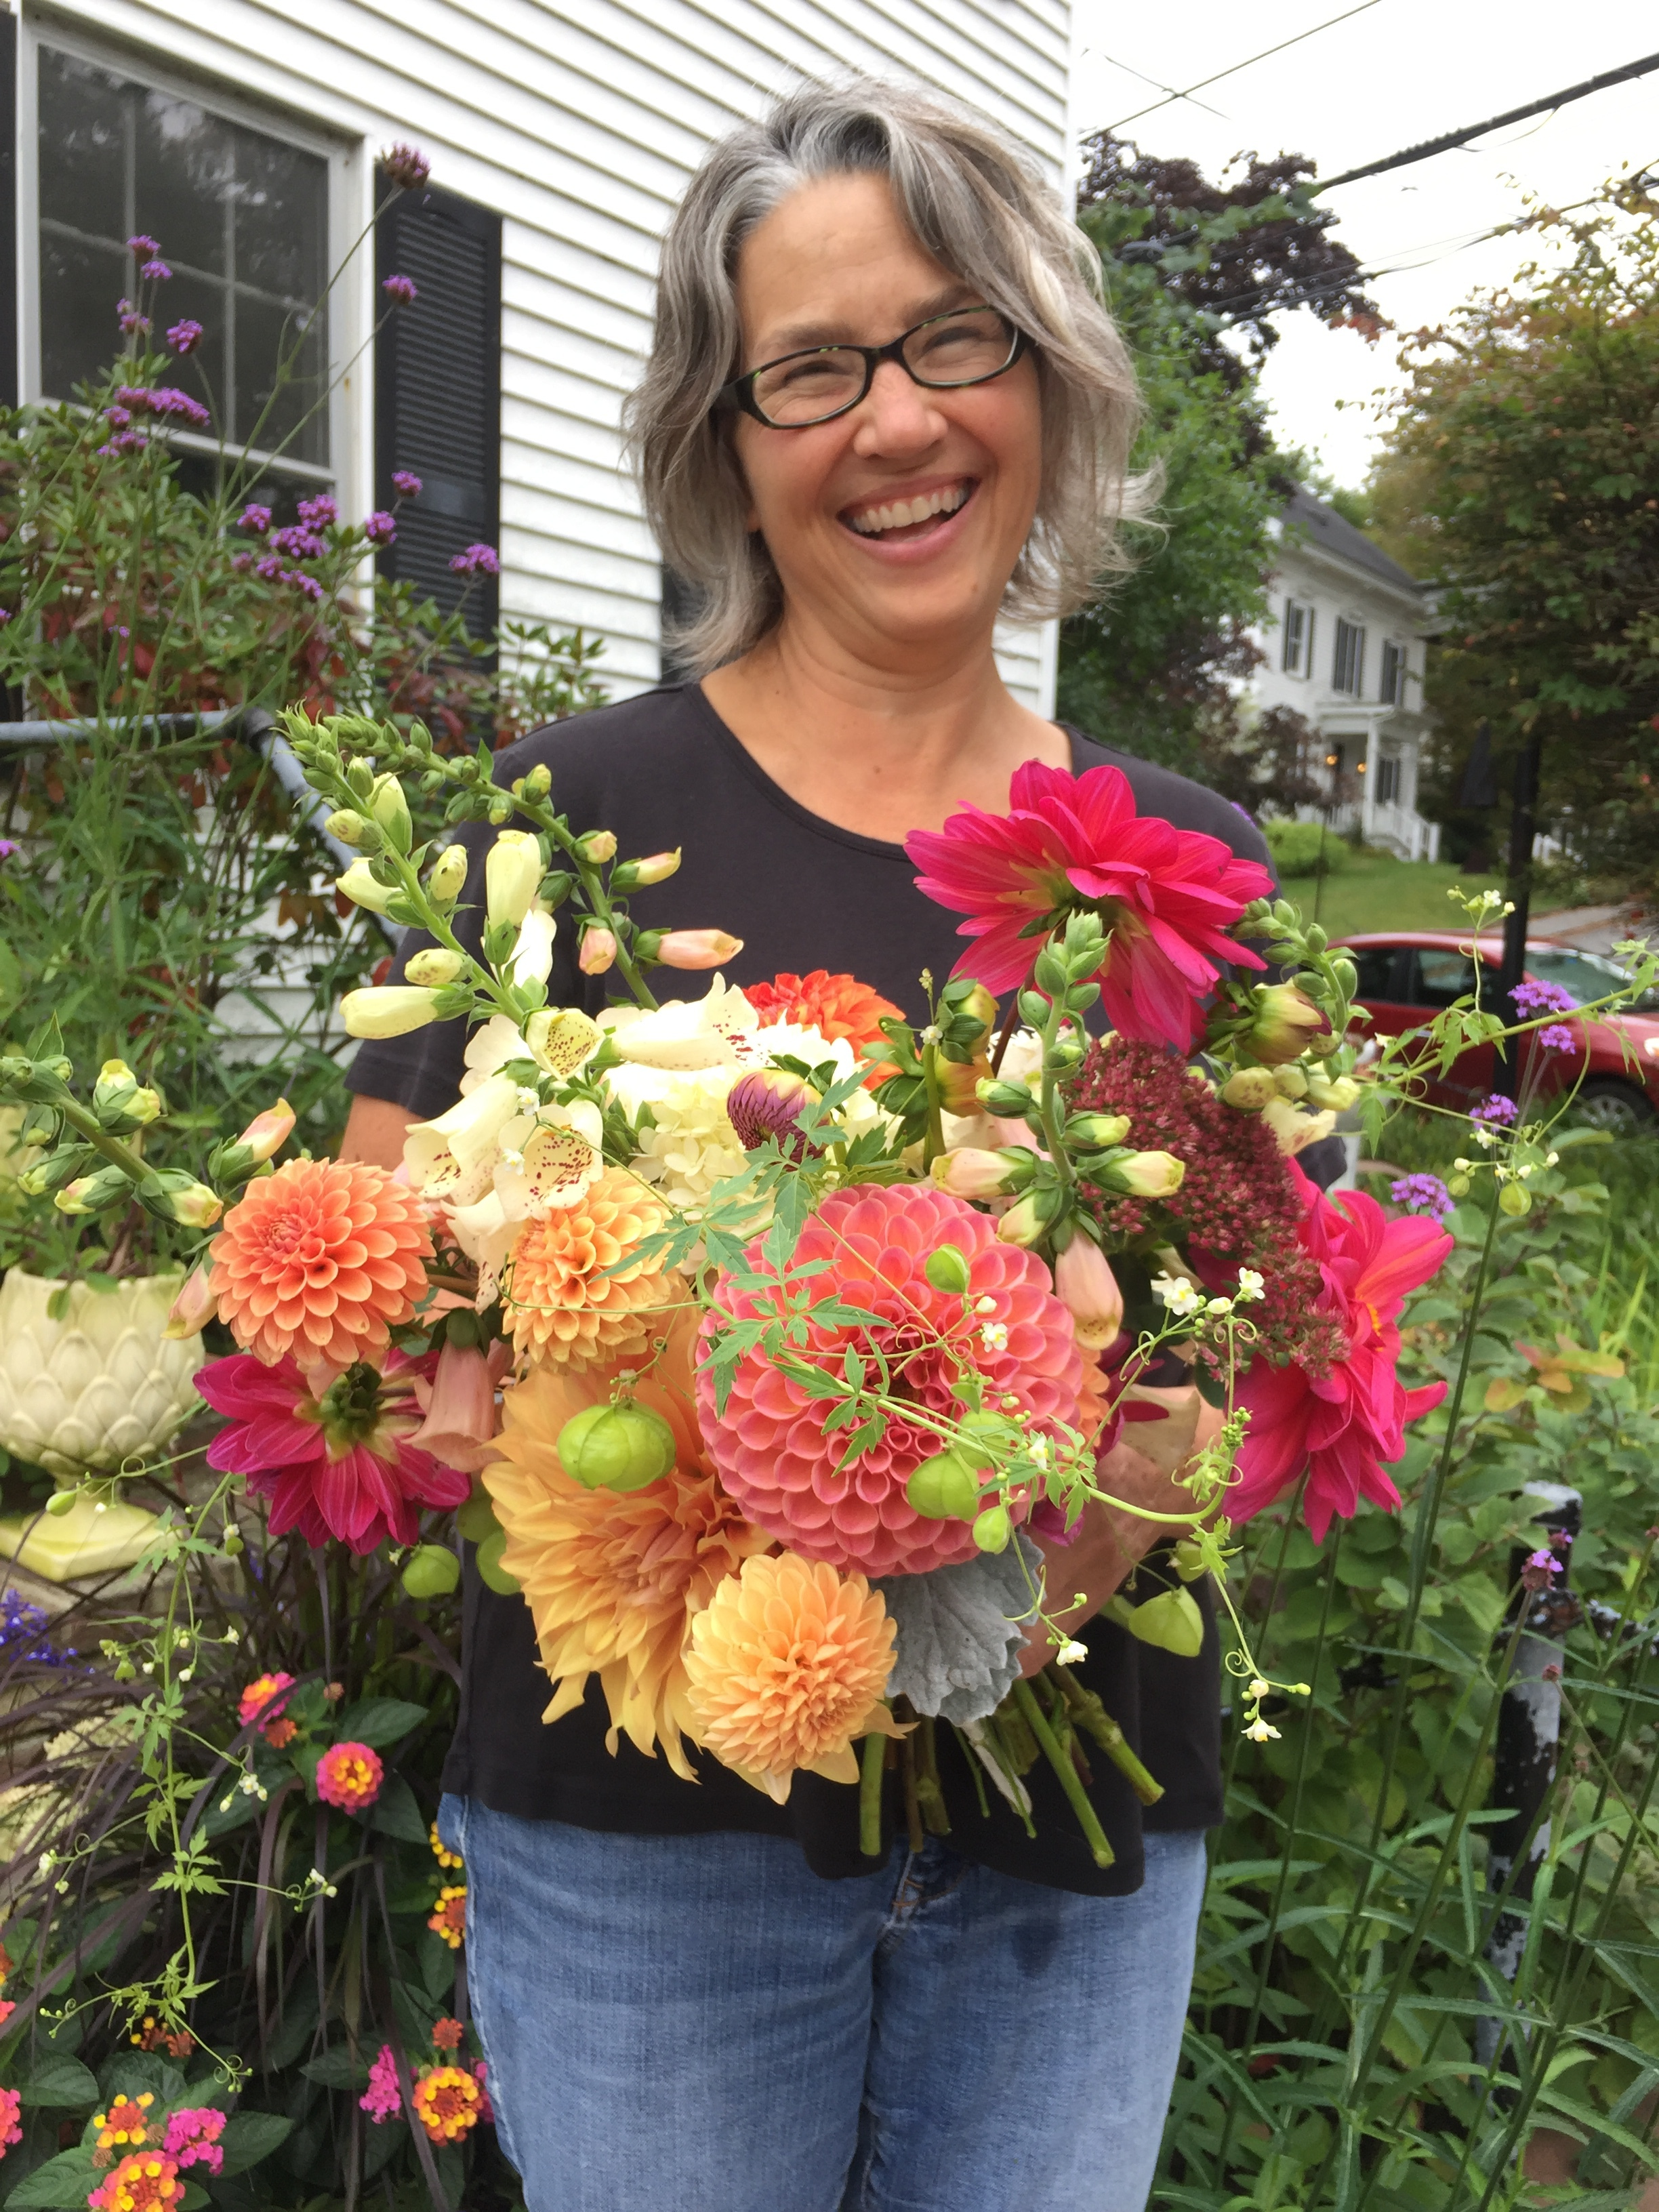 Ione Floral Design created a bodacious English garden styled hand-tied bouquet for our client Genesis Community Fund's recent event.